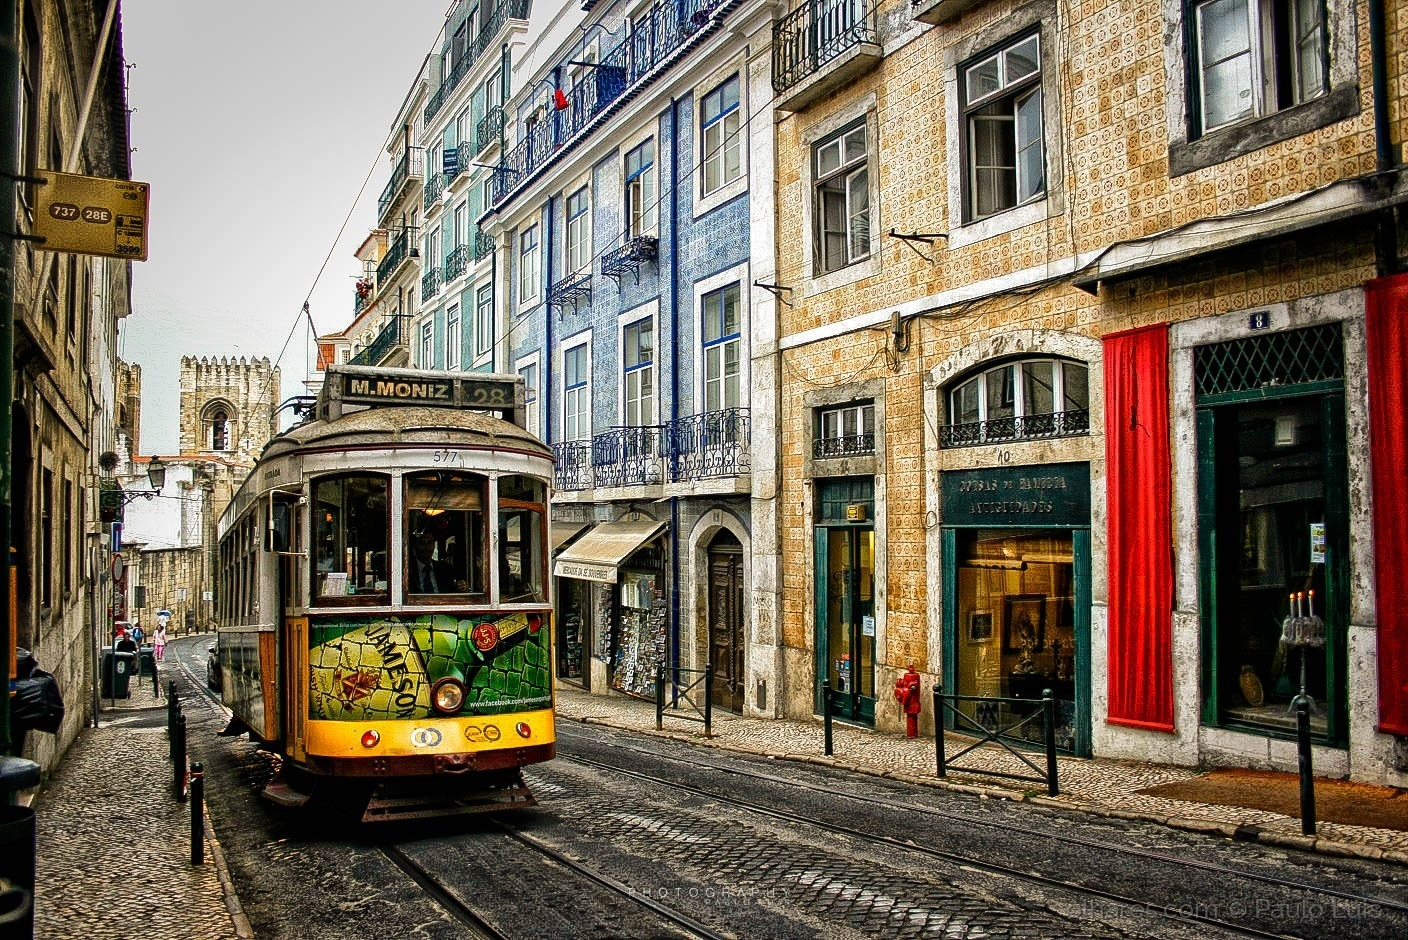 © Paulo Luis - The colors of Lisbon